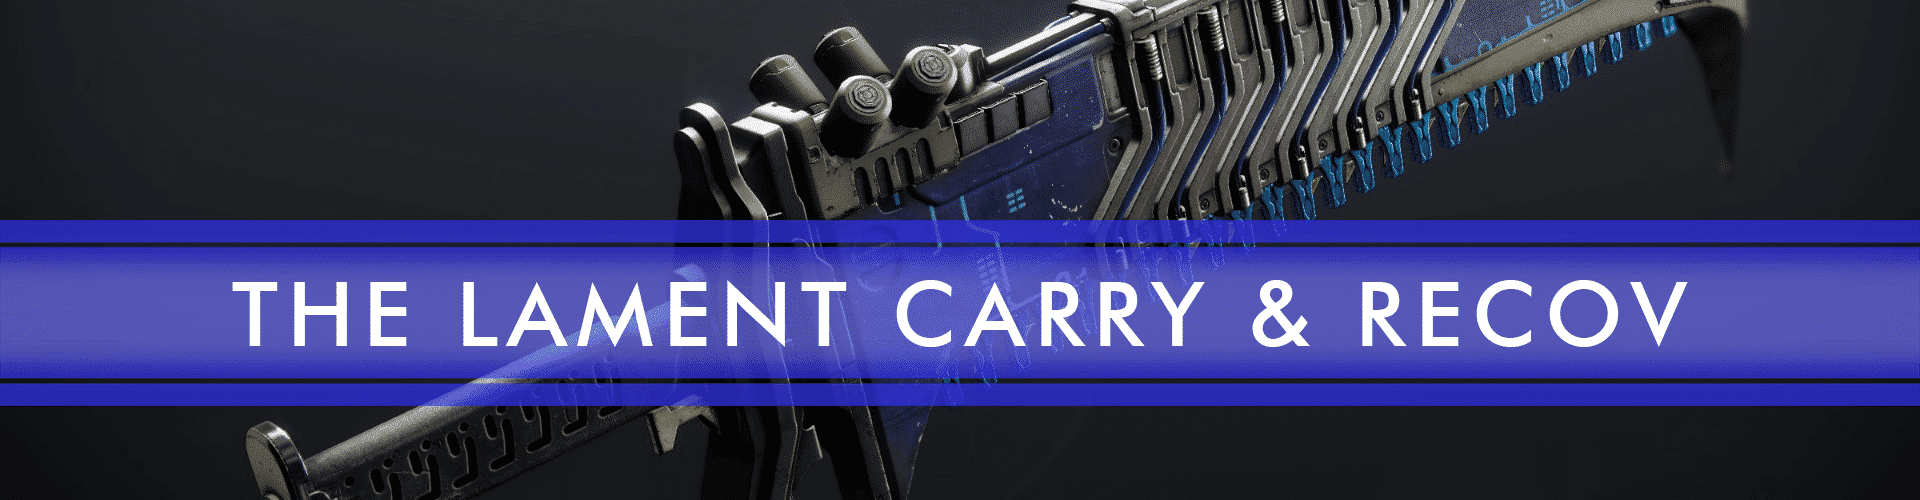 the lament carry recov boost